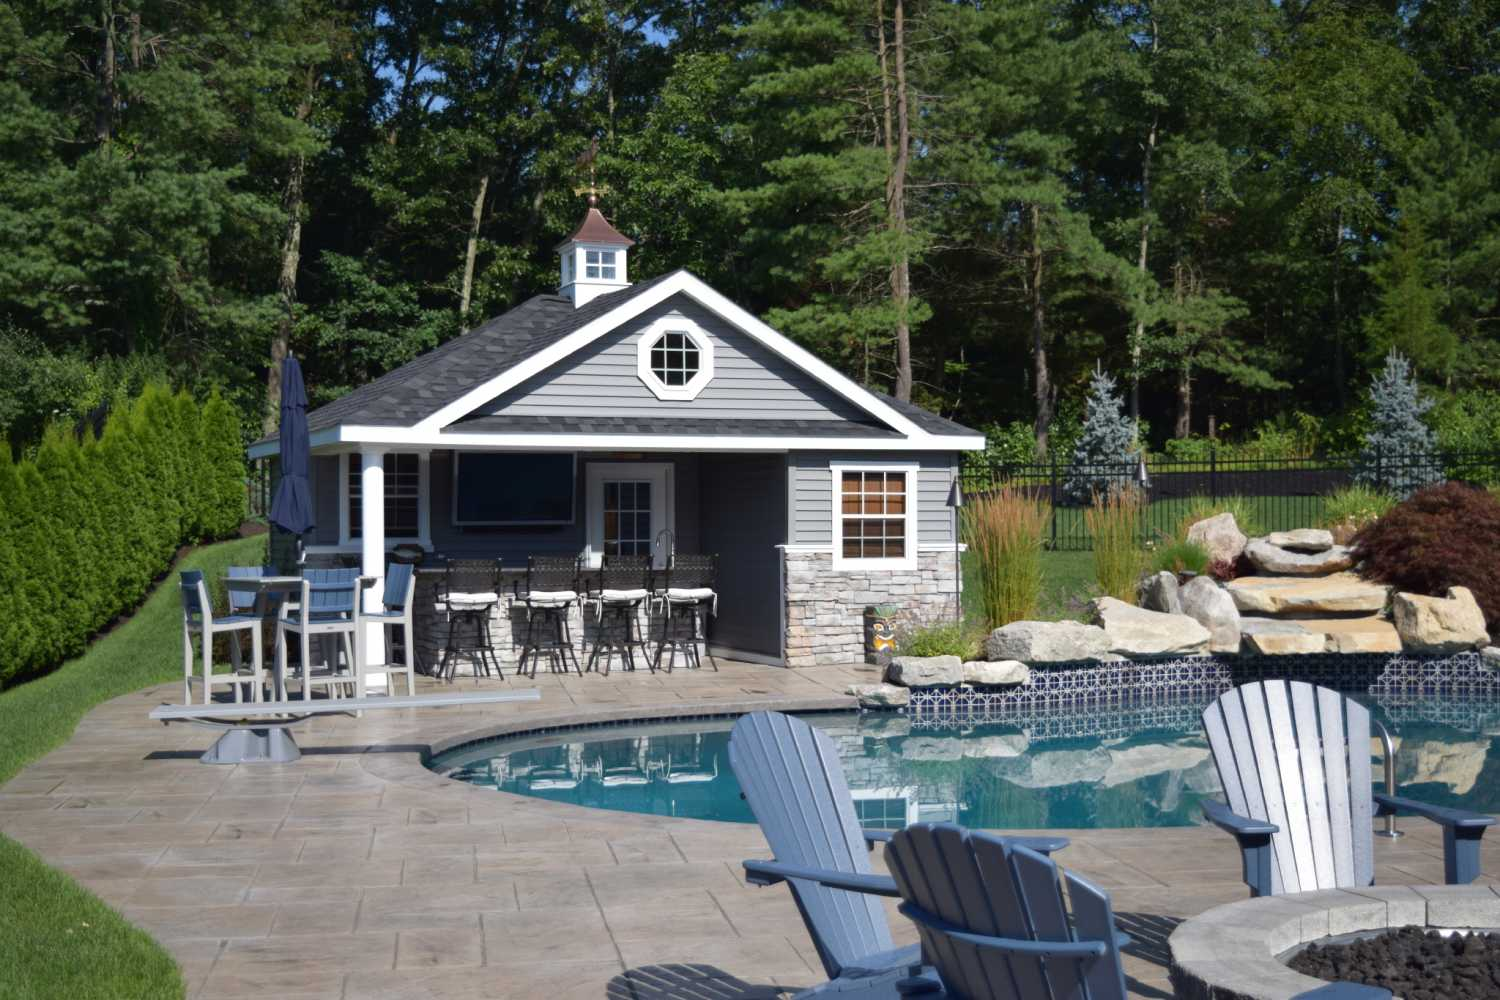 This Beautiful Poolhouse Includes A Bathroom Changing Area Plus Storage Room And Also There Is Full Bar